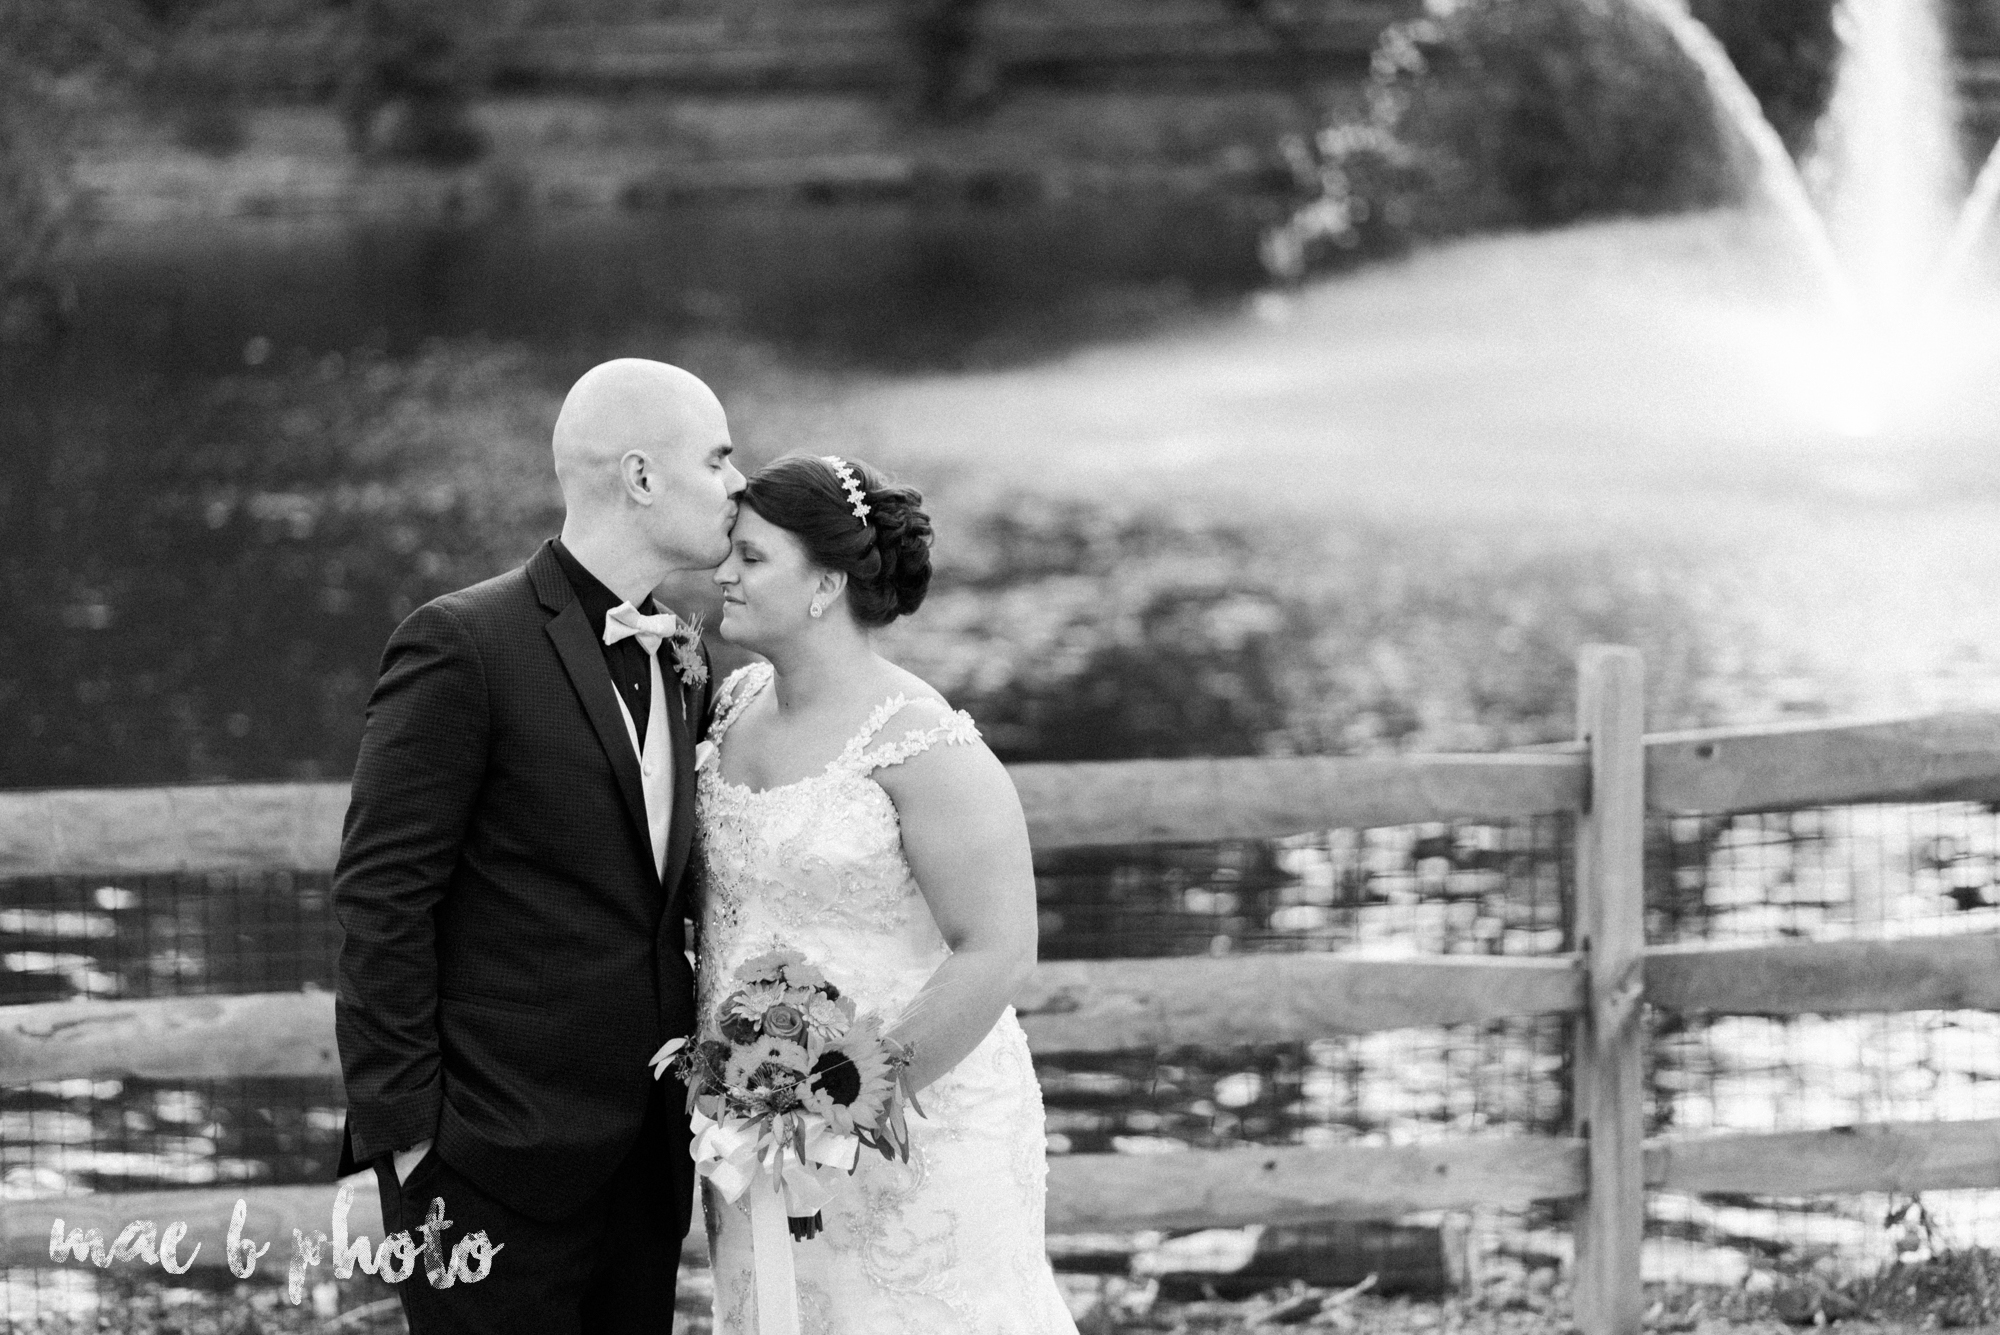 kaylynn & matt's fall zoo wedding at the cleveland metroparks zoo in cleveland ohio photographed by mae b photo-53.jpg